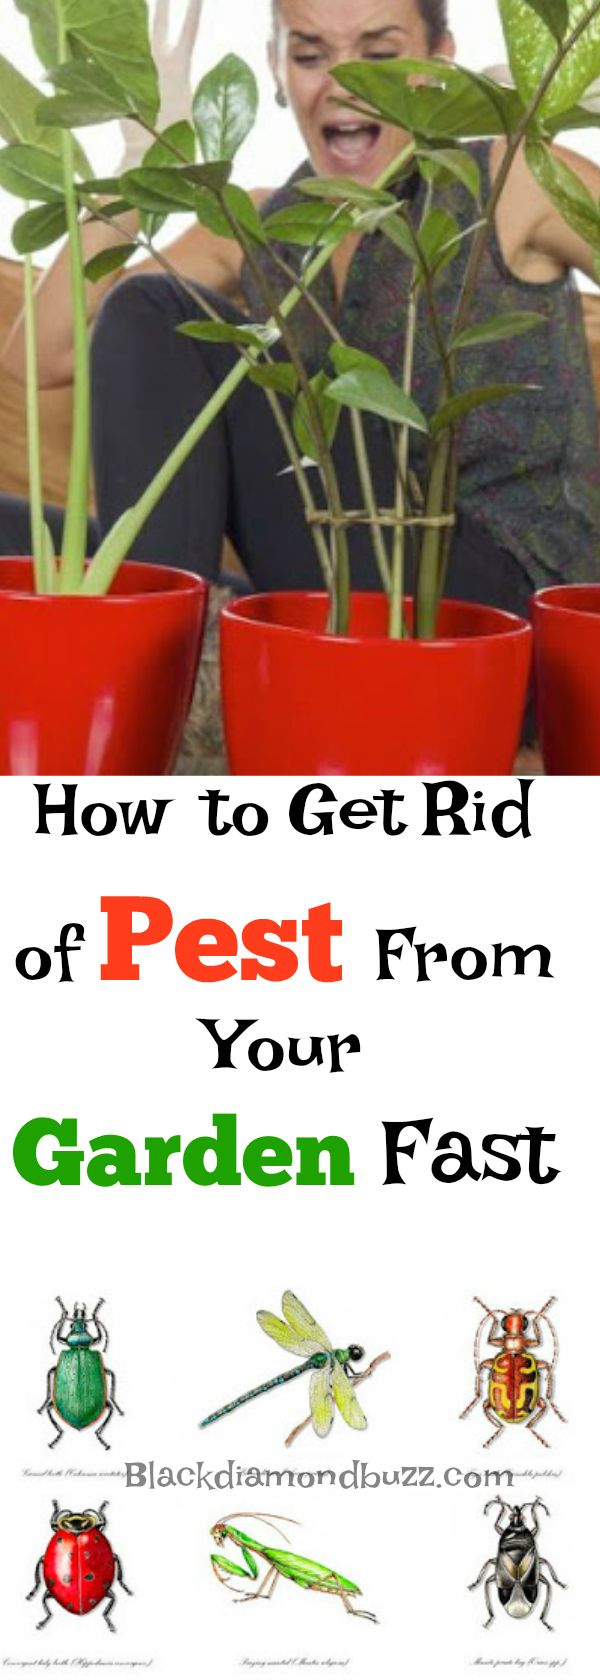 Natural Pesticide - How to get rid of pest from your home garden fast